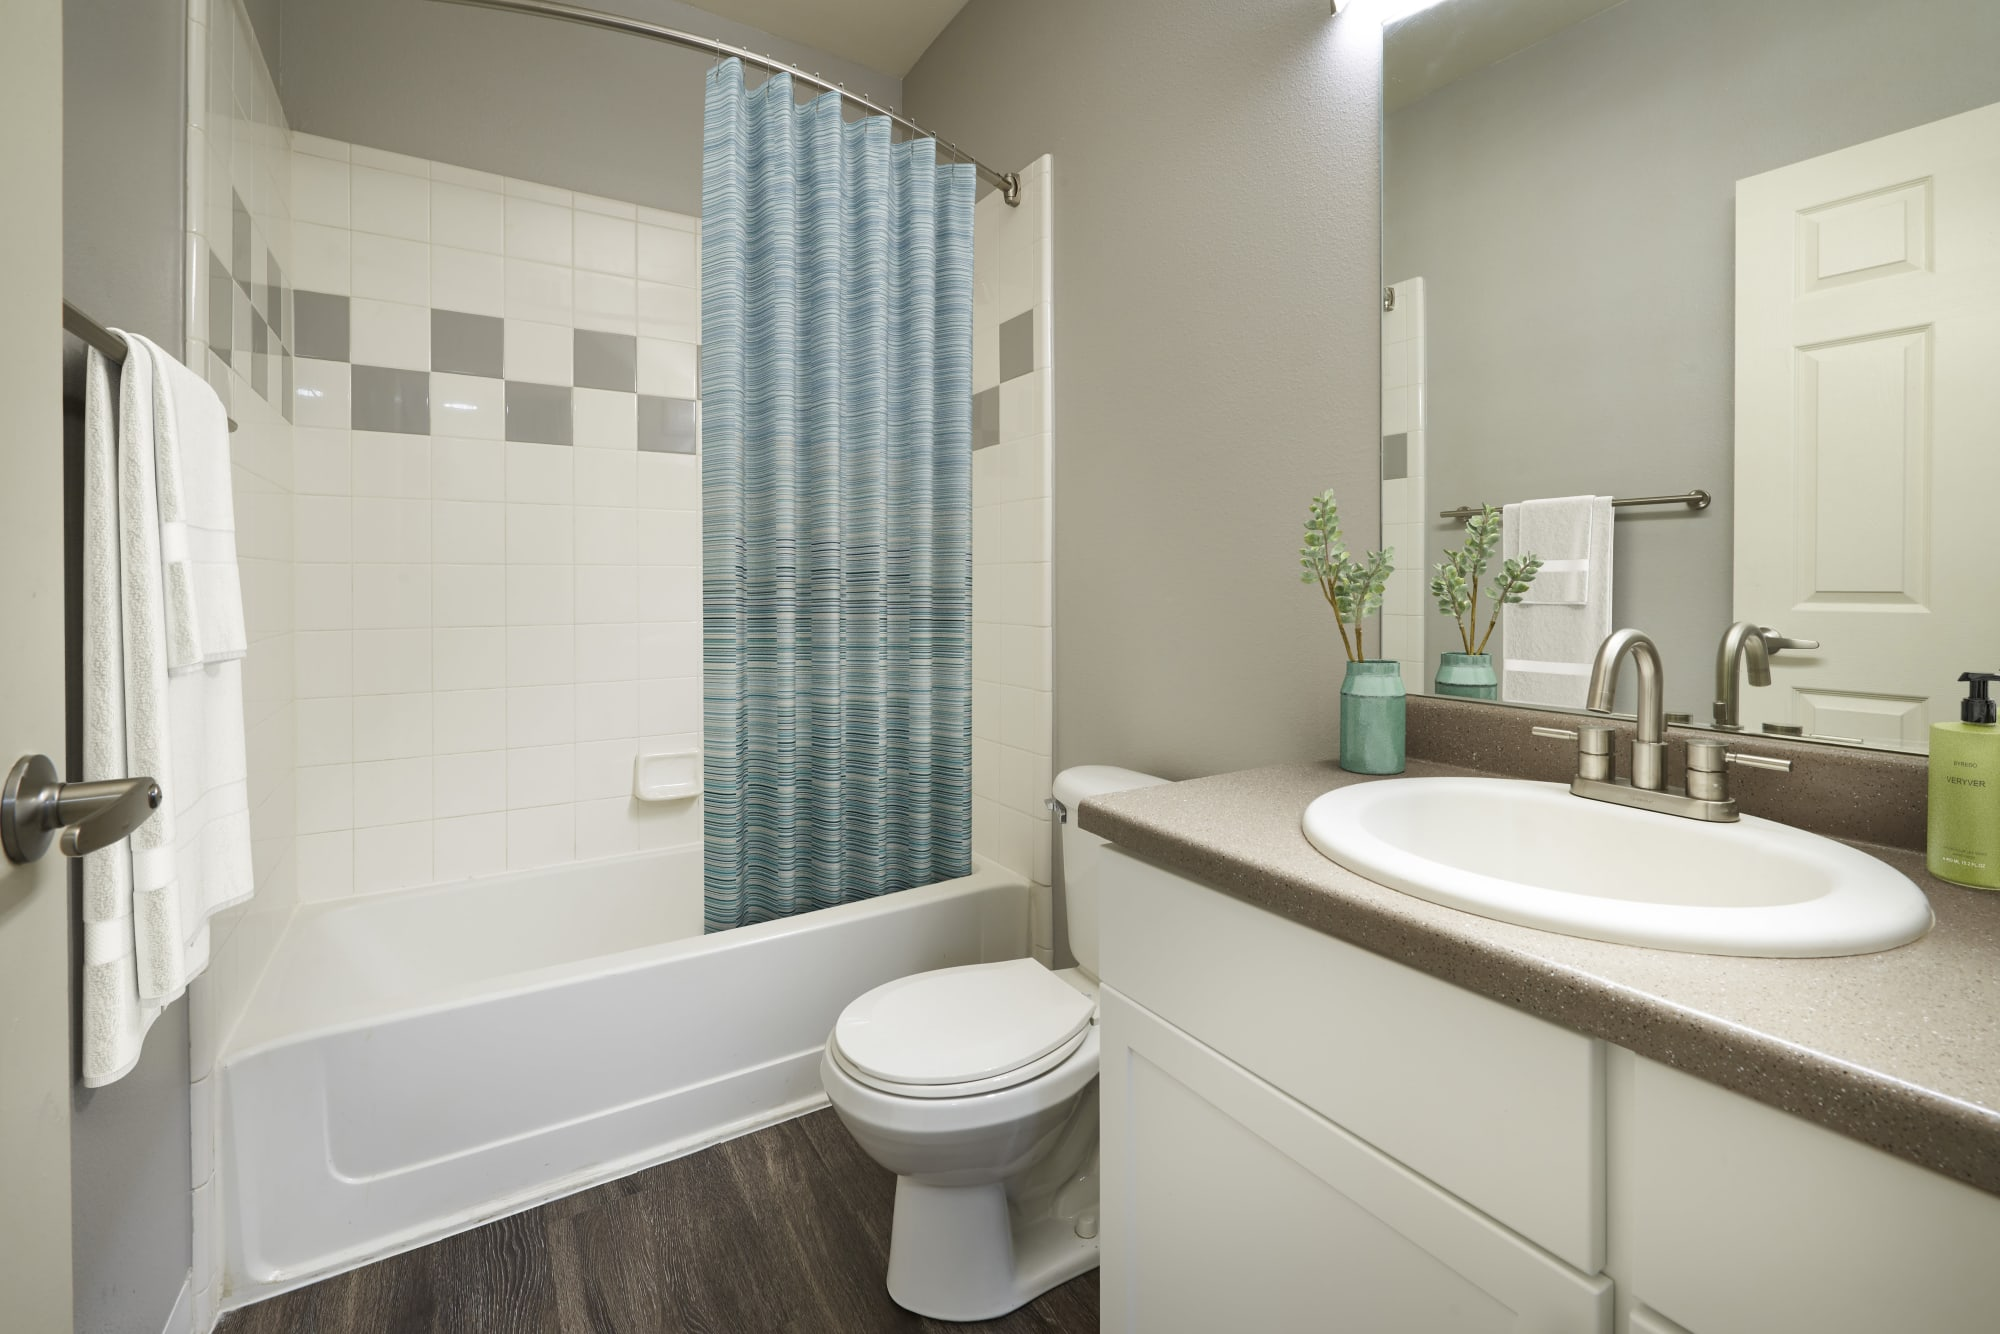 Bathroom with white cabinets and a tub at Westridge Apartments in Aurora, Colorado